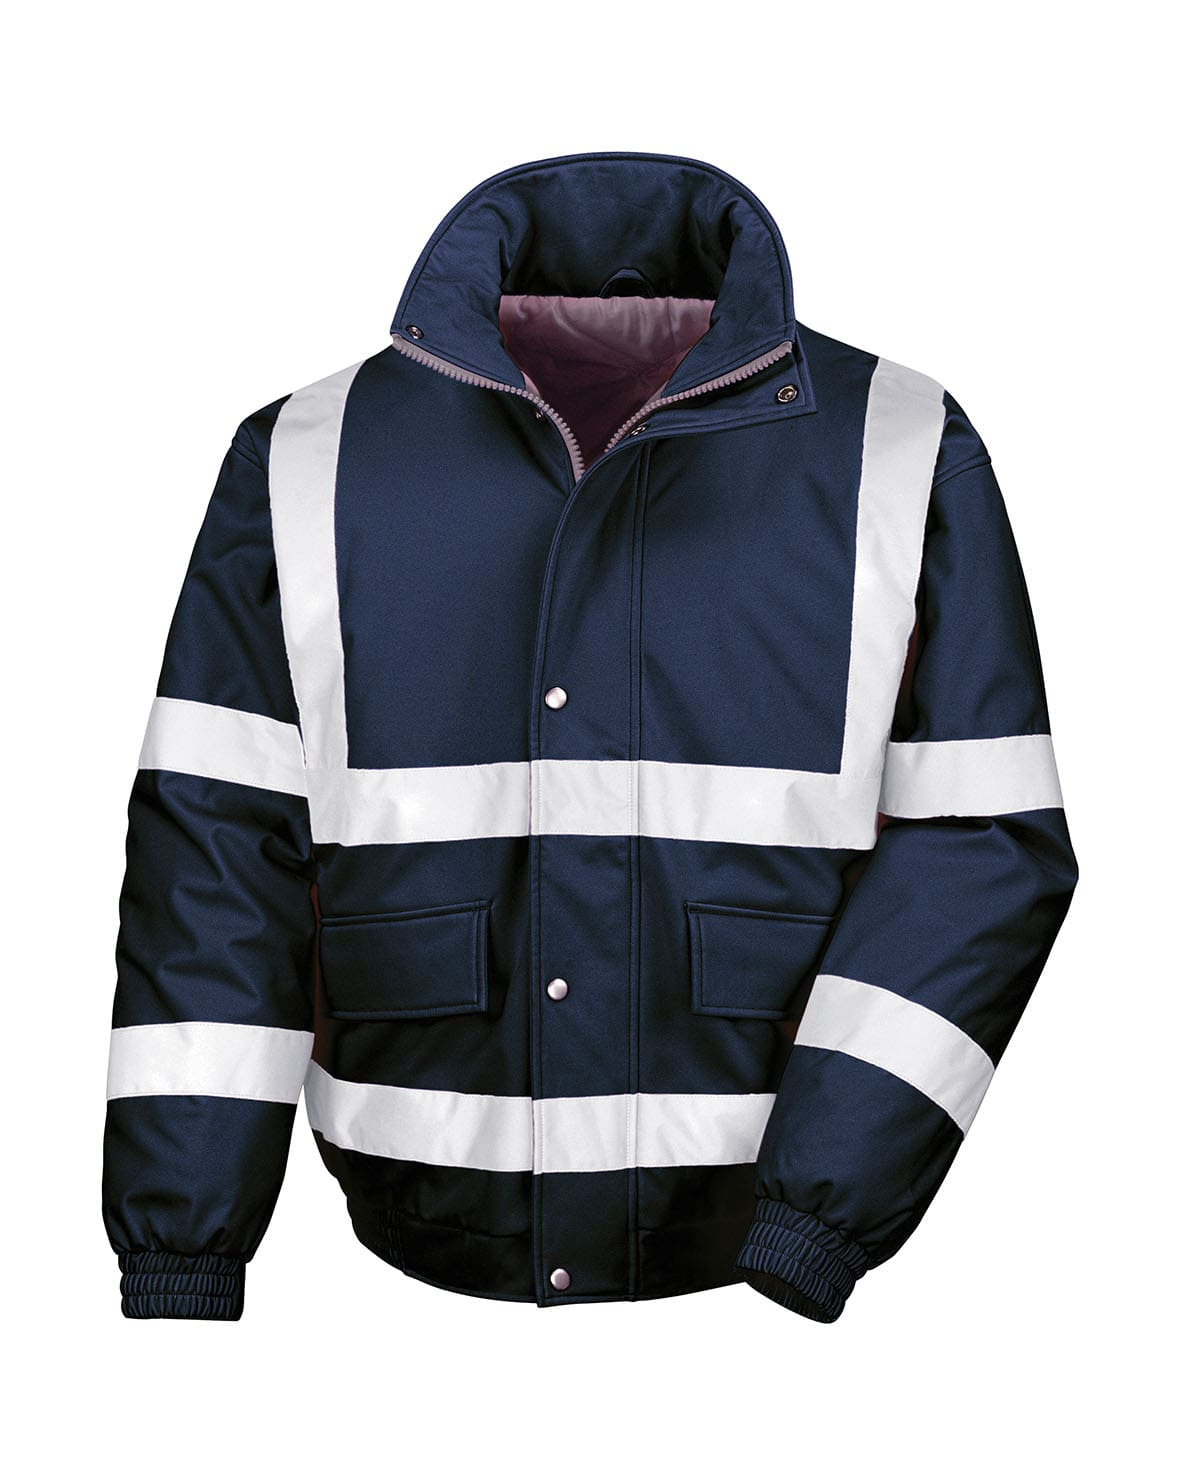 A large range of Workwear Jackets and Coats that can be Branded with Your Design or Logo